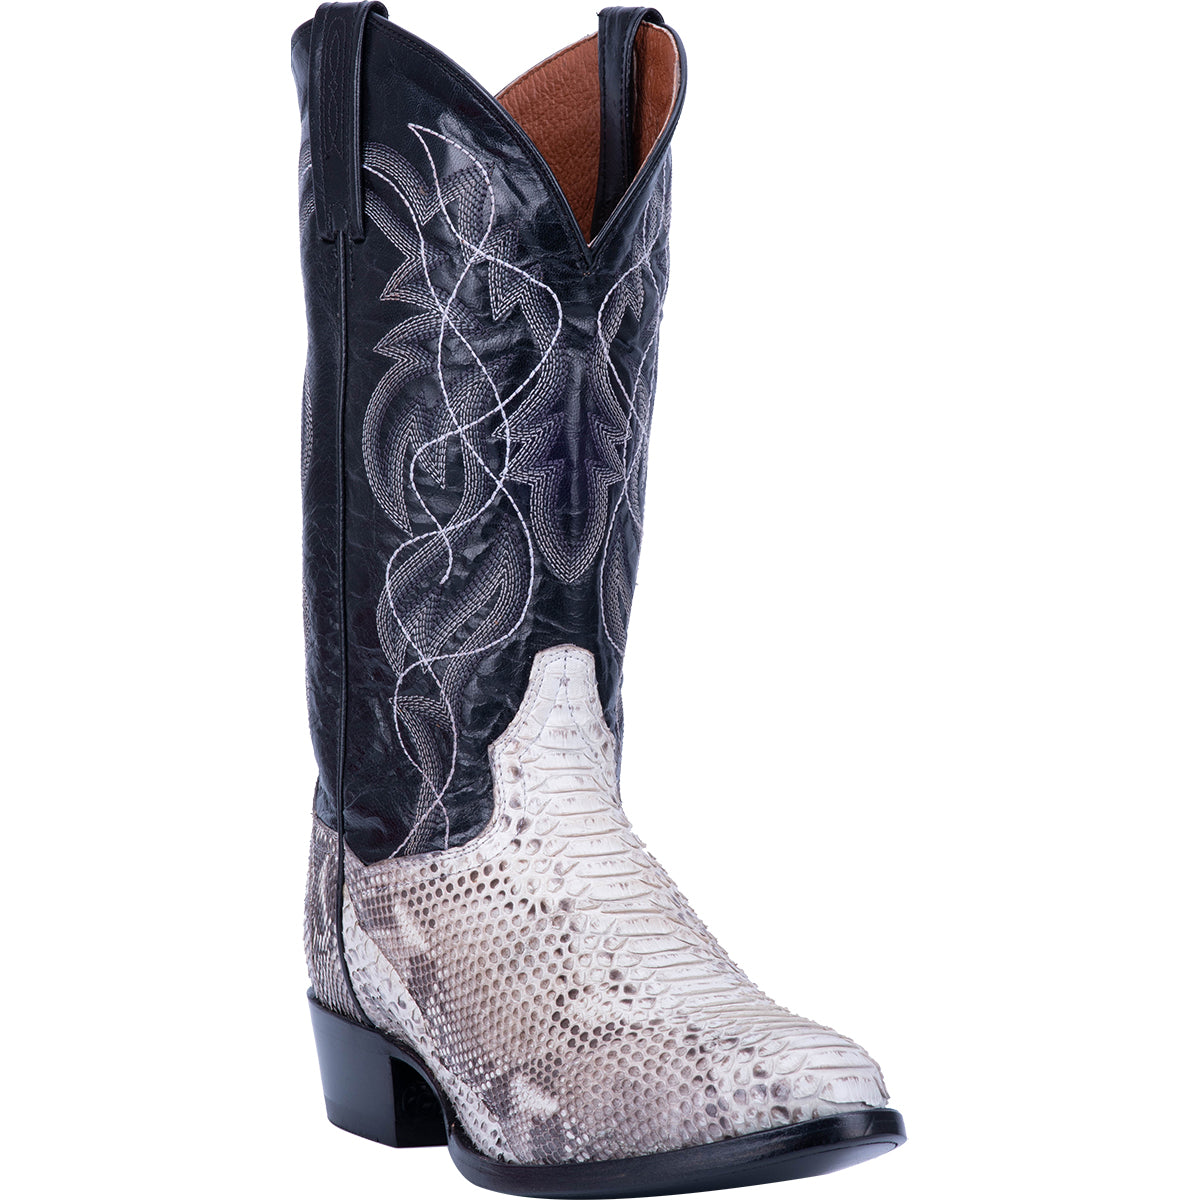 SLY PYTHON BOOT